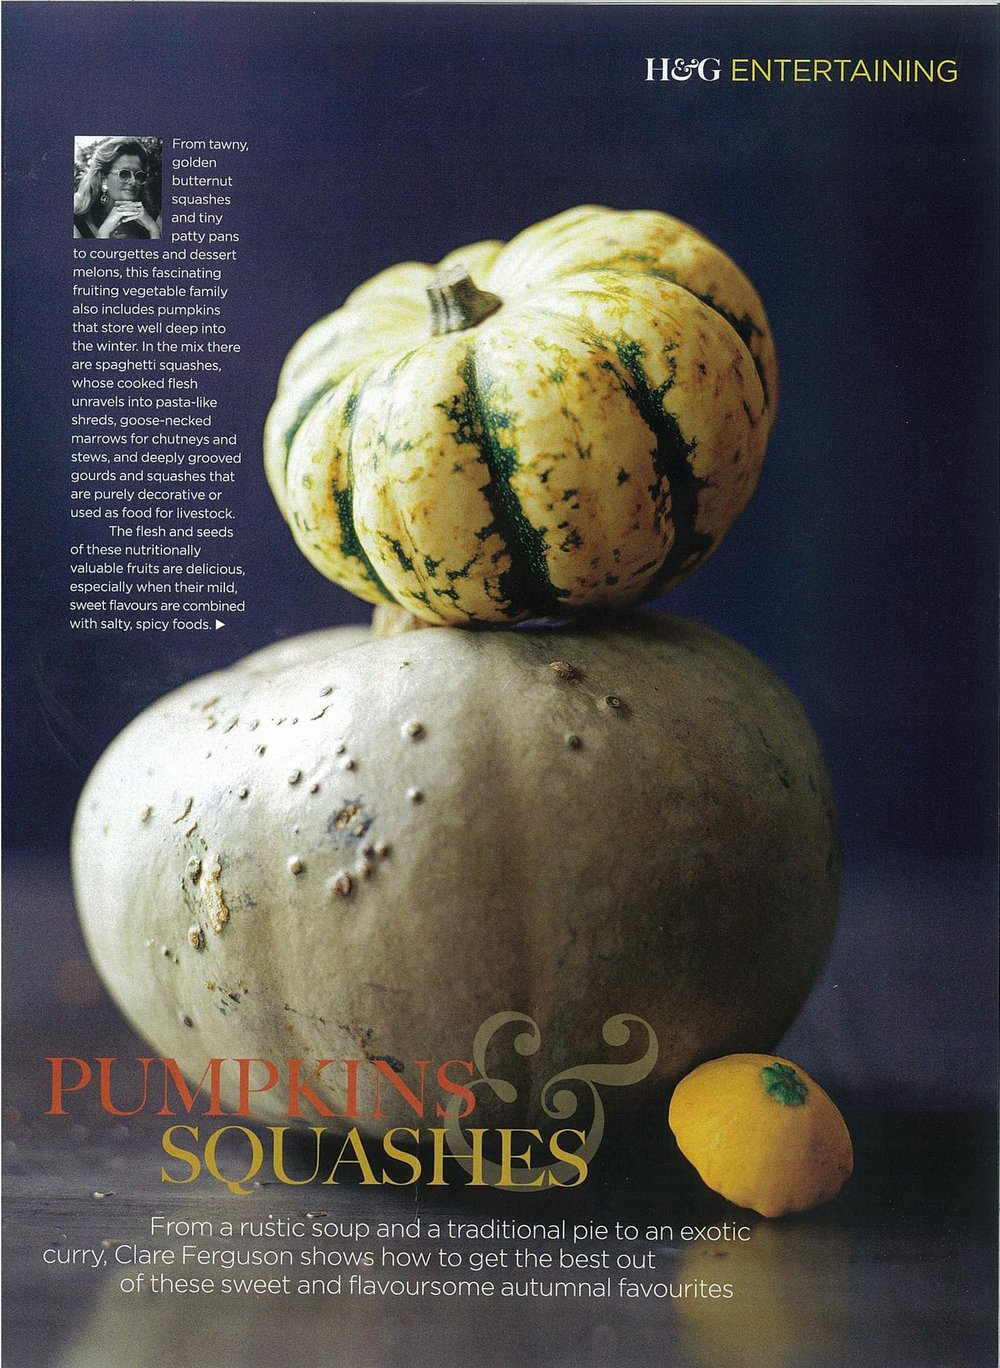 44.HomesAndGardensNov07RichardJungClareFergusonAliBrownPumpkinsAndSquashes.jpg